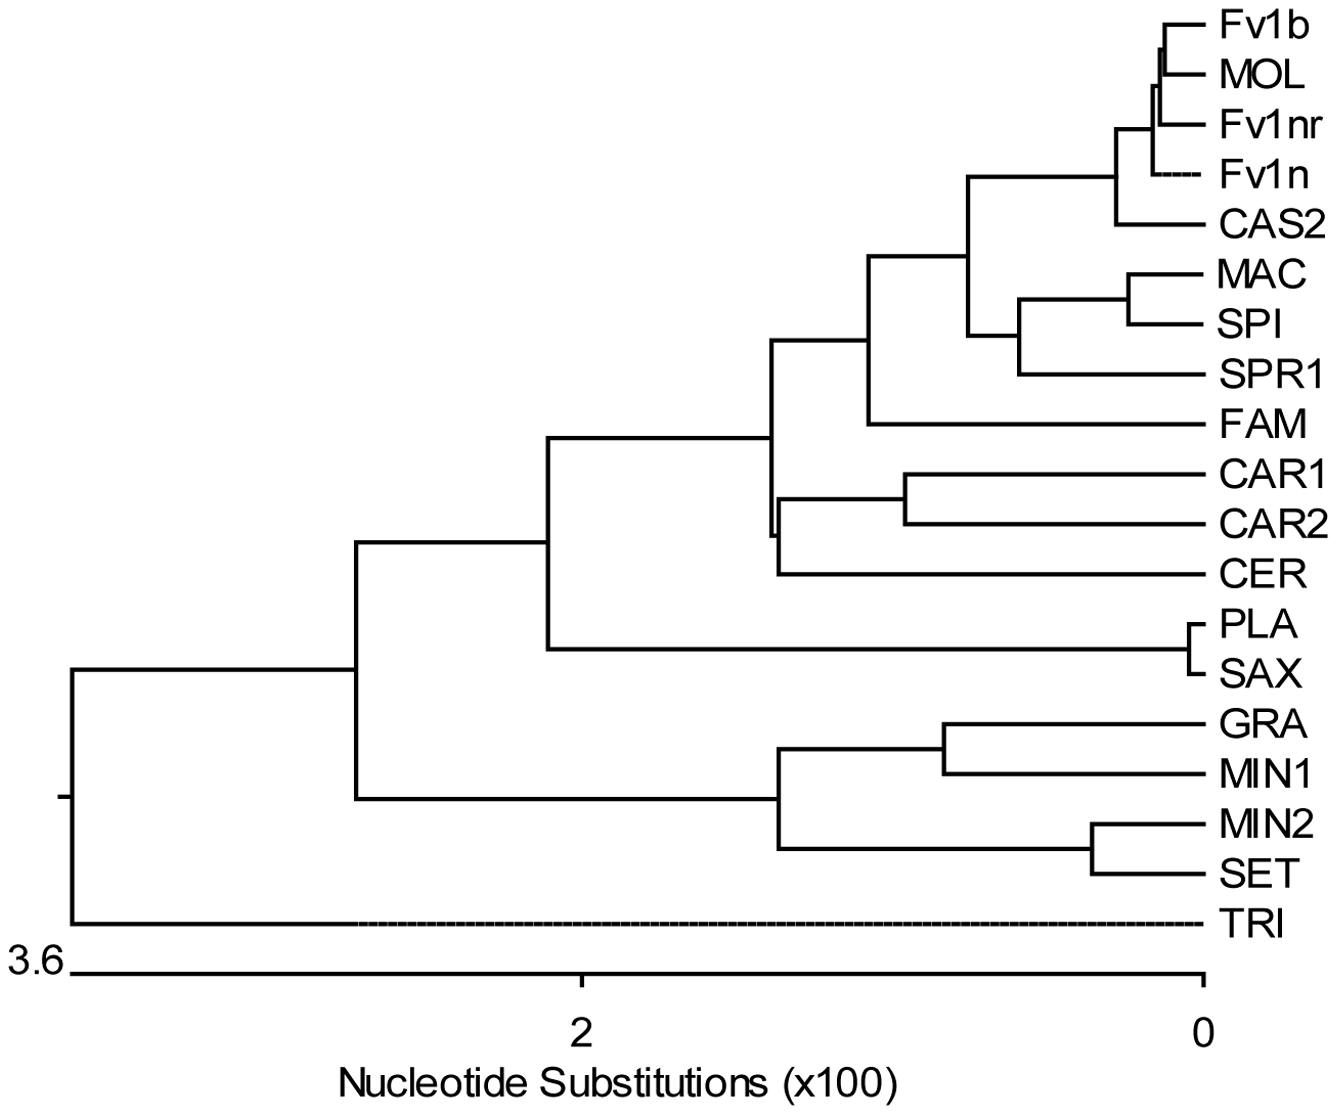 Phylogenetic tree of <i>Fv1</i> sequences.